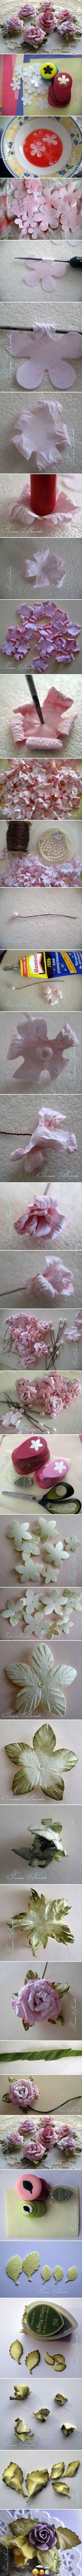 #paper #roses - Most inspiring pictures and photos!